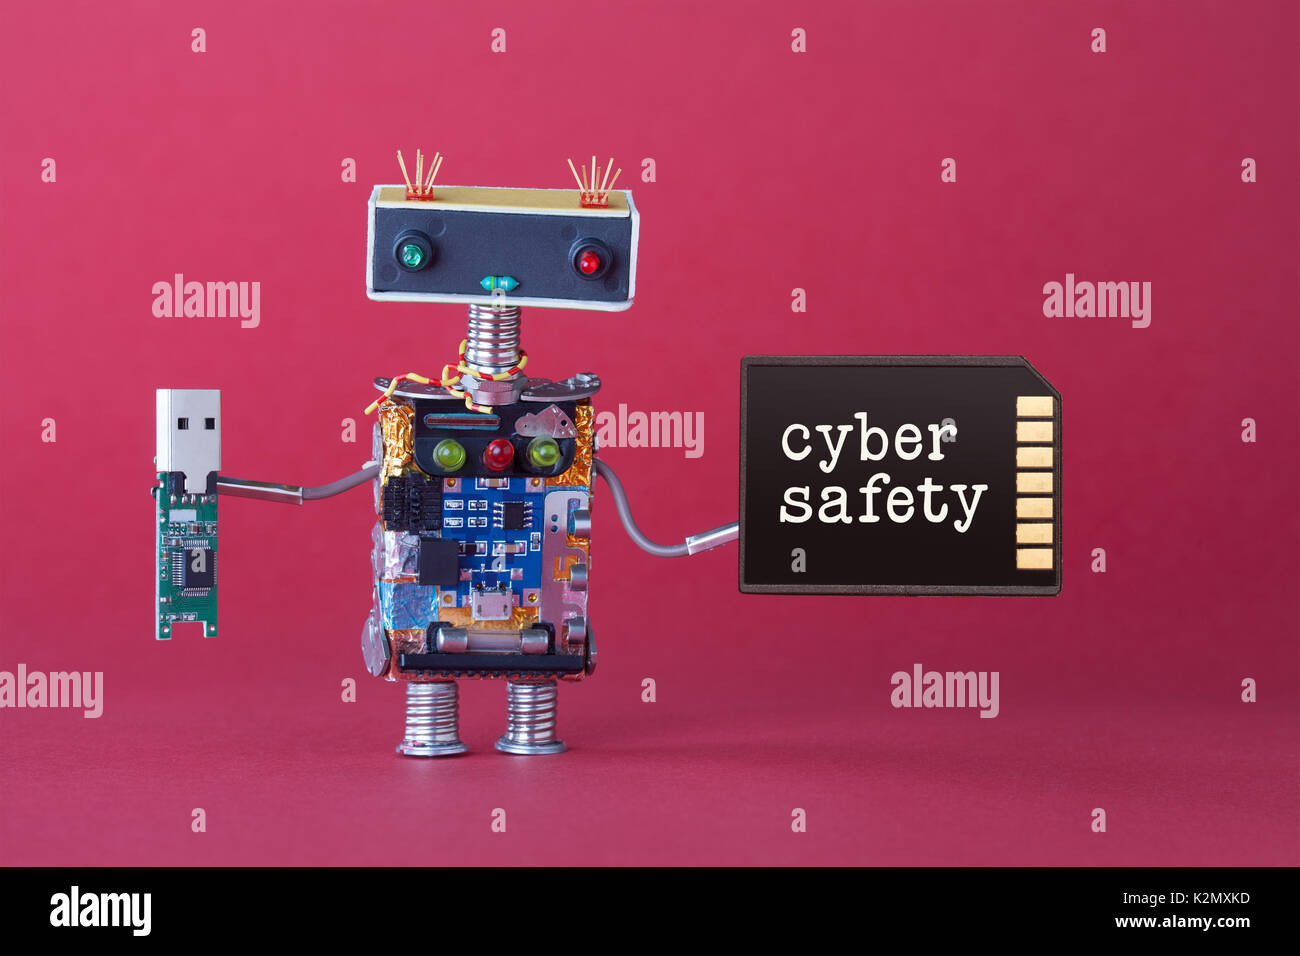 Lovely Cyber Safety Data Storage Concept. System Administrator Robot Toy Stock  Photo: 156582593   Alamy